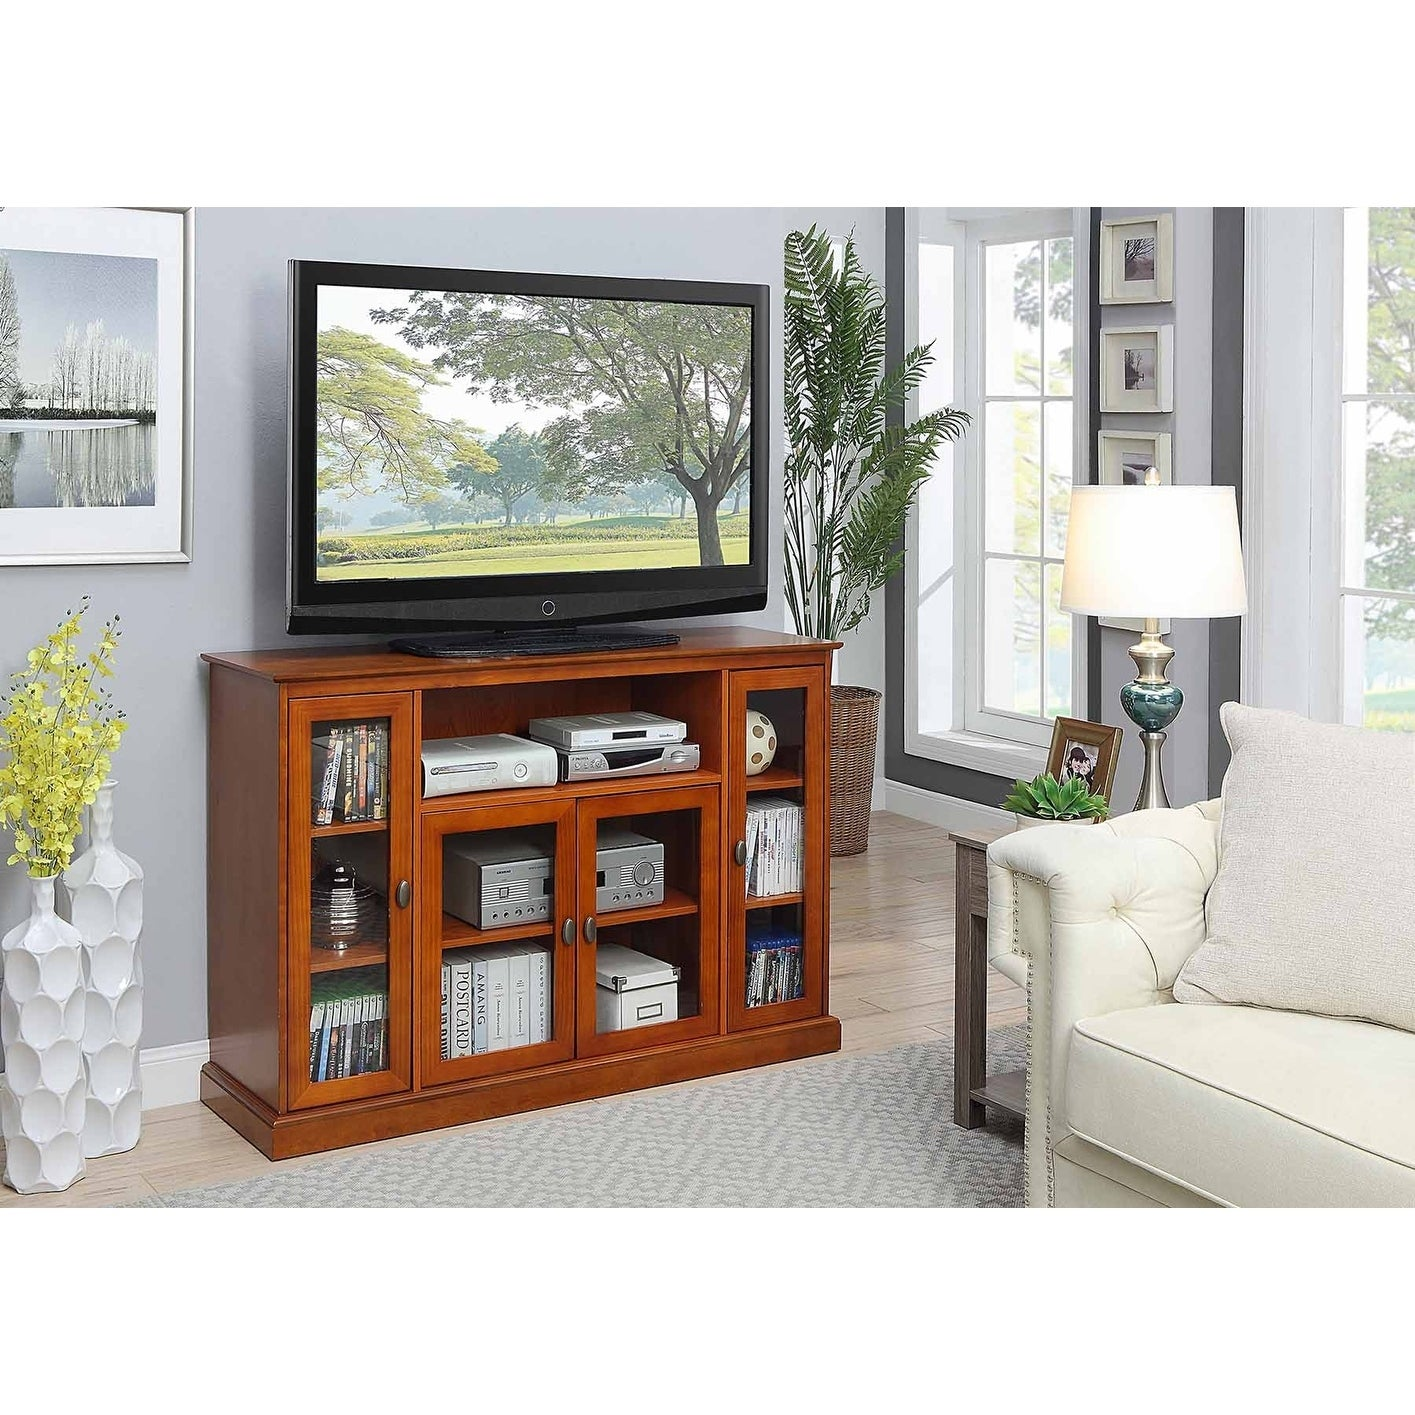 DESIGNS2GO Summit Highboy TV Stand Espresso Finish